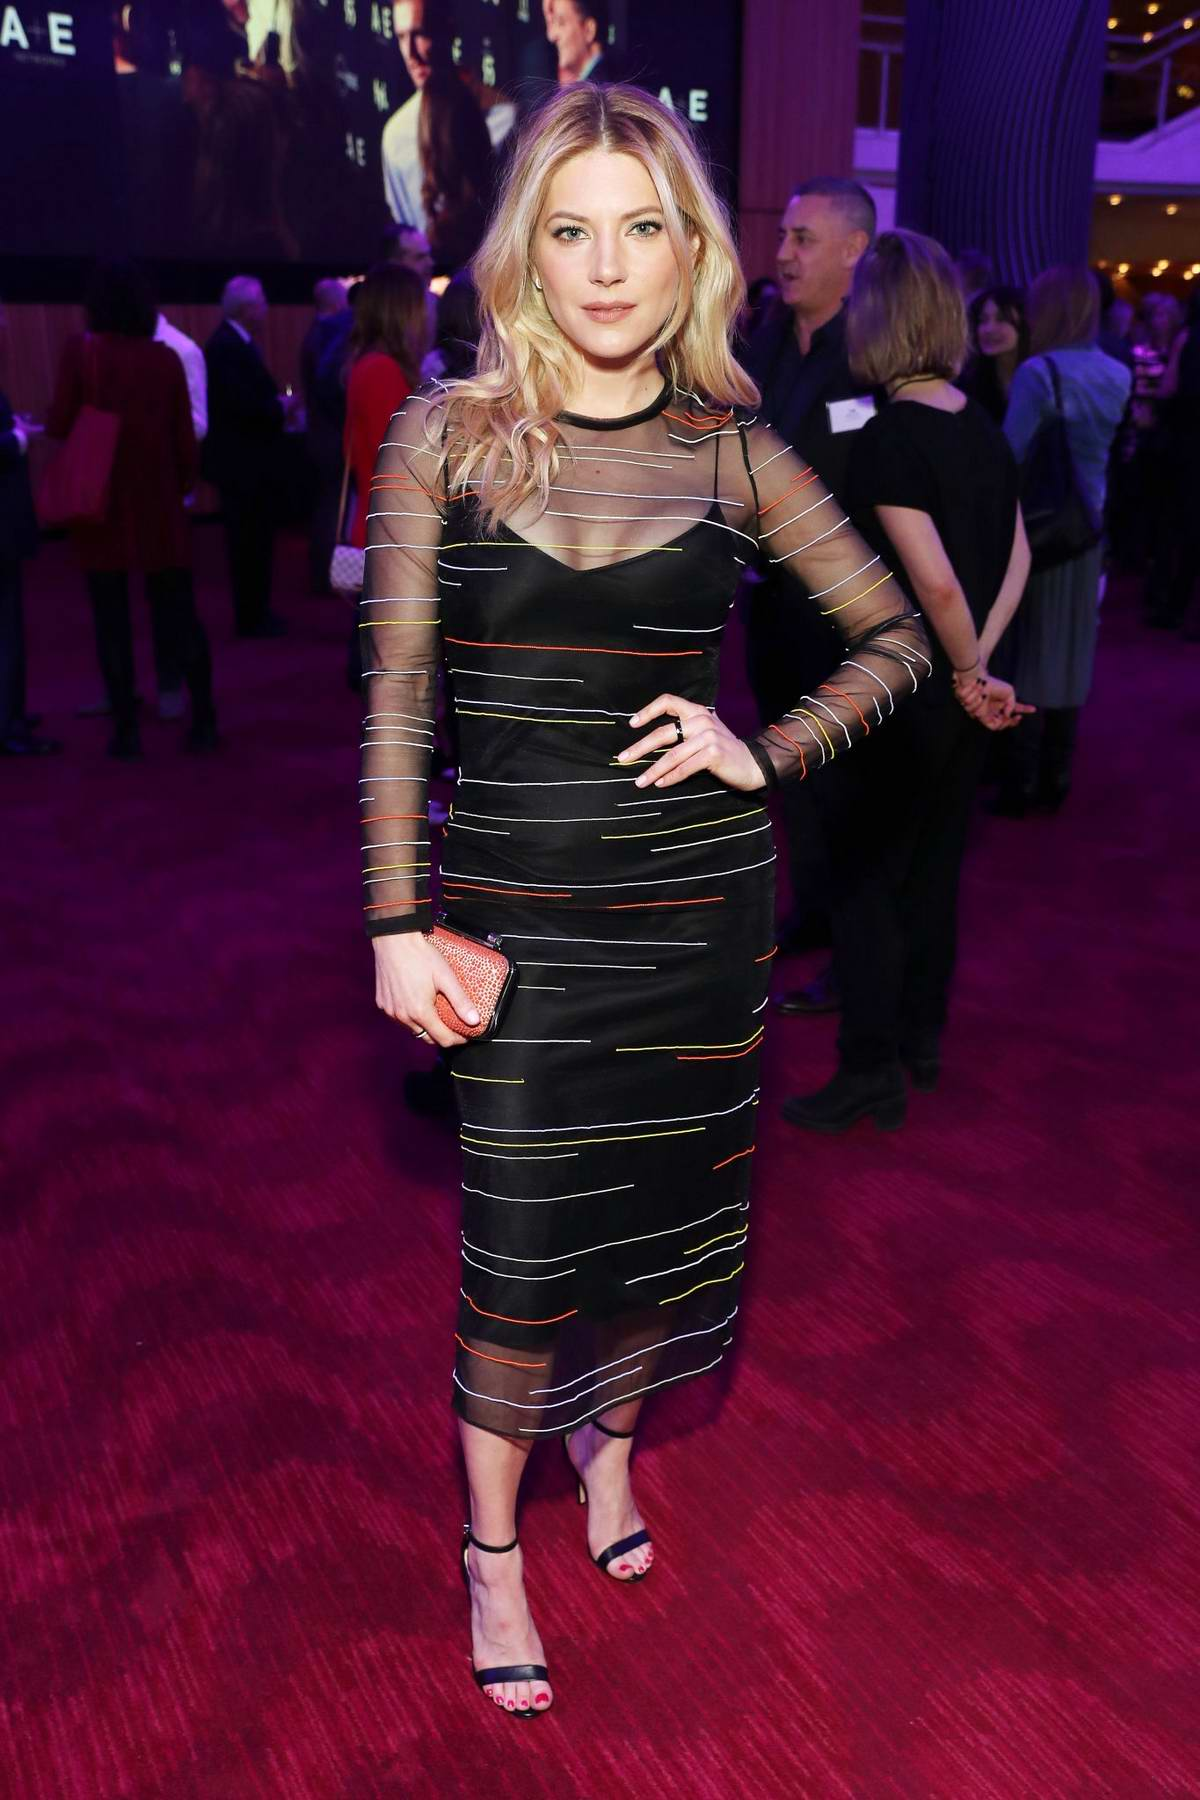 Katheryn Winnick attends the 2019 A+E Upfront at Jazz at Lincoln Center in New York City